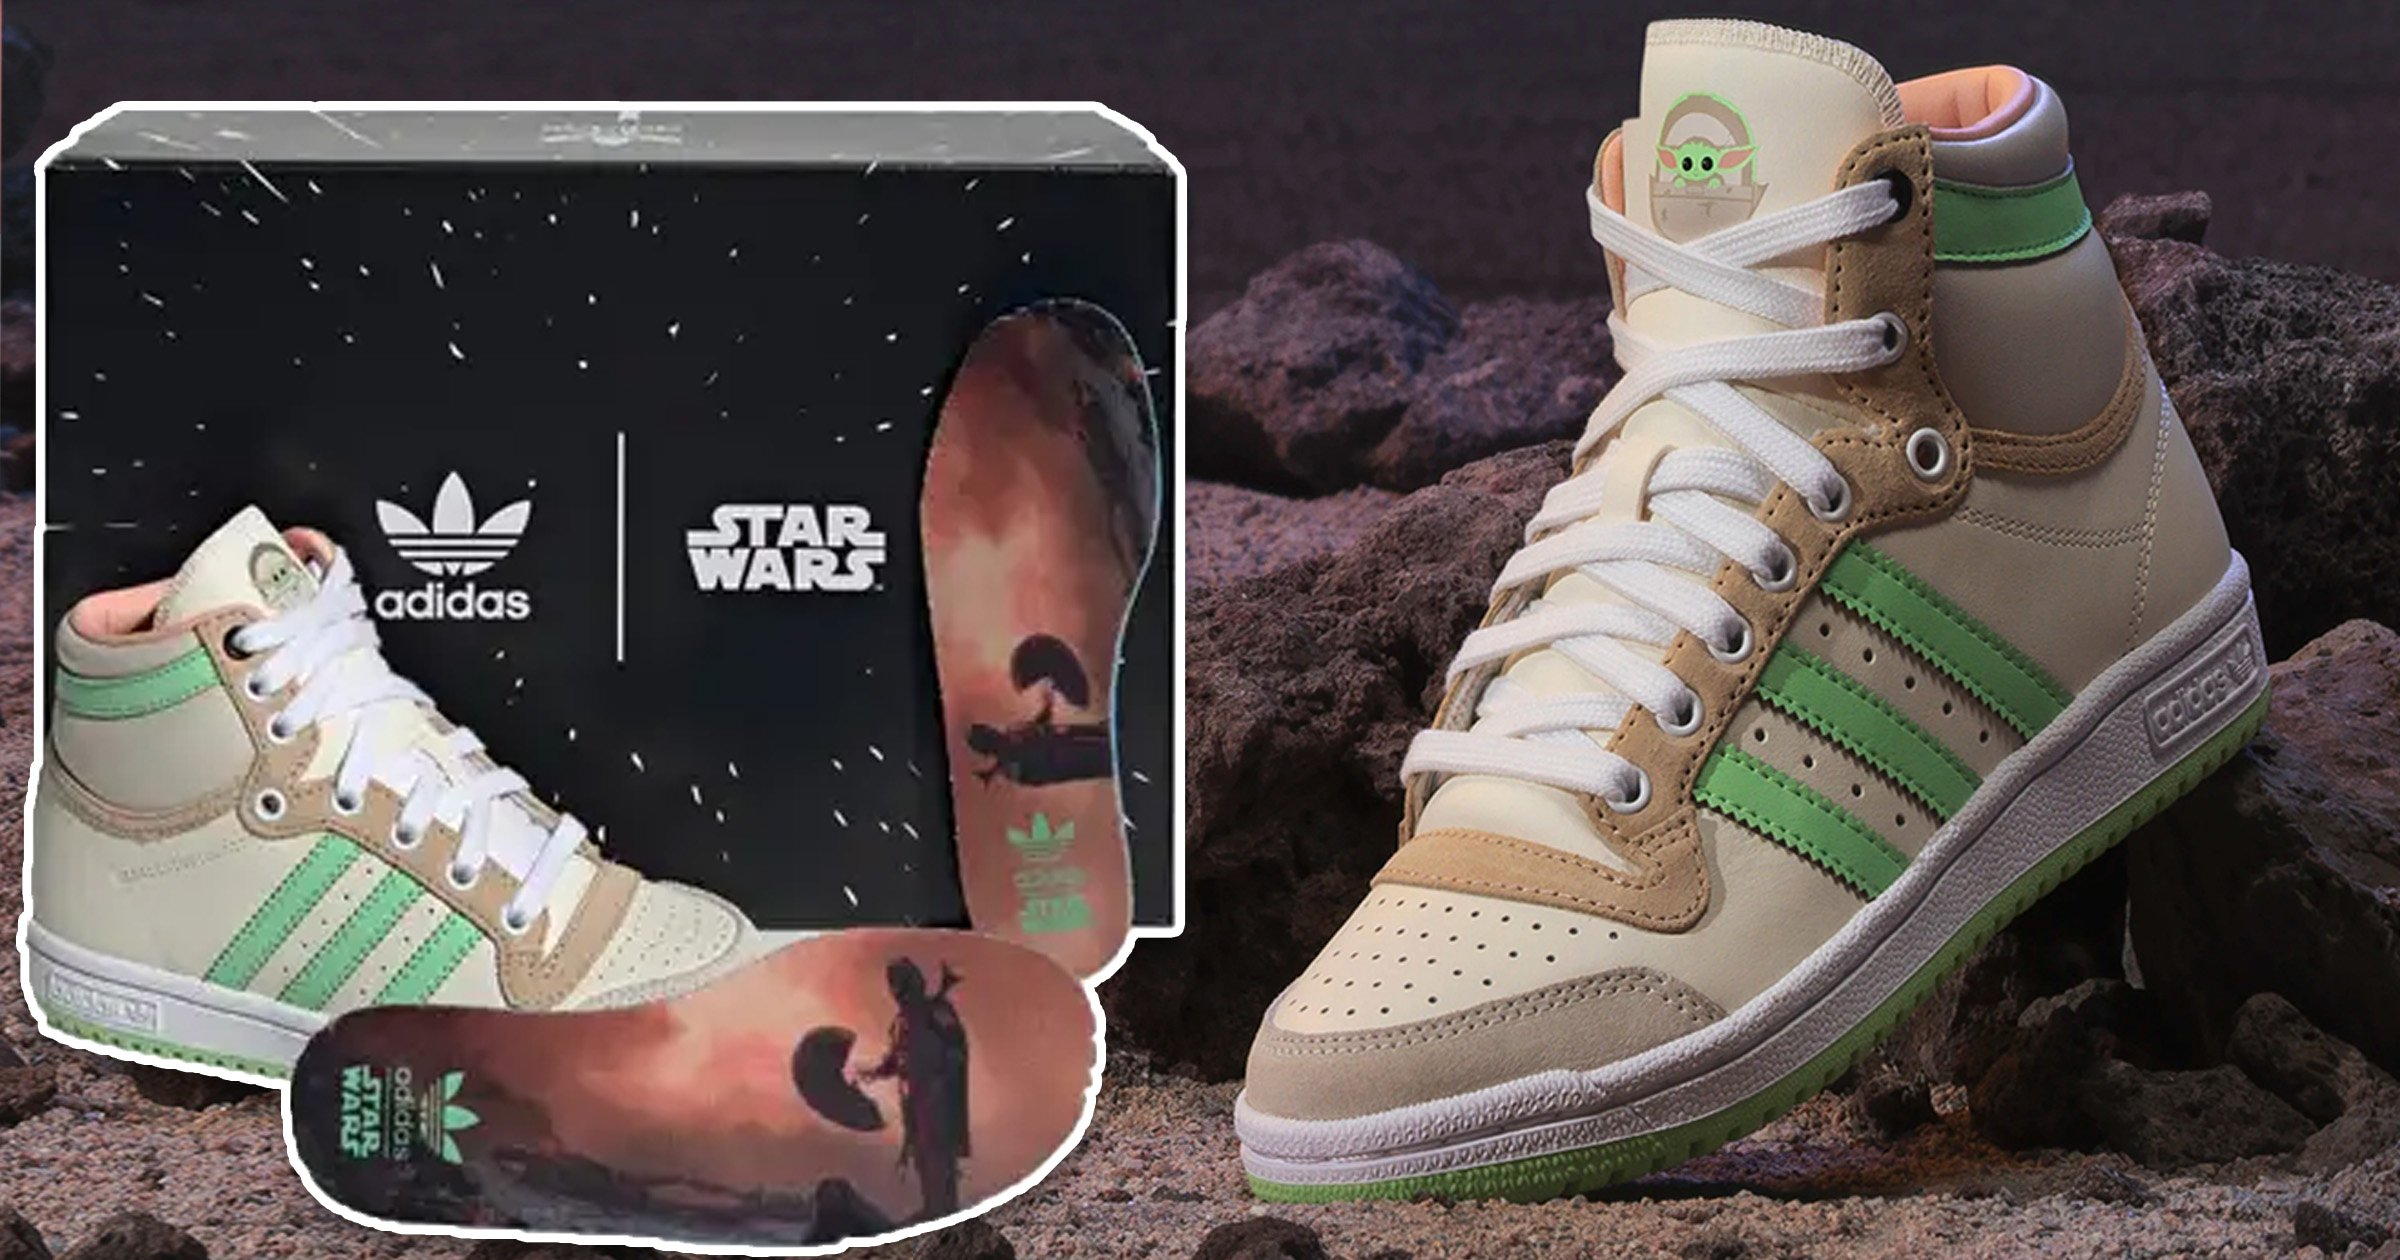 Adidas launches Baby Yoda-themed